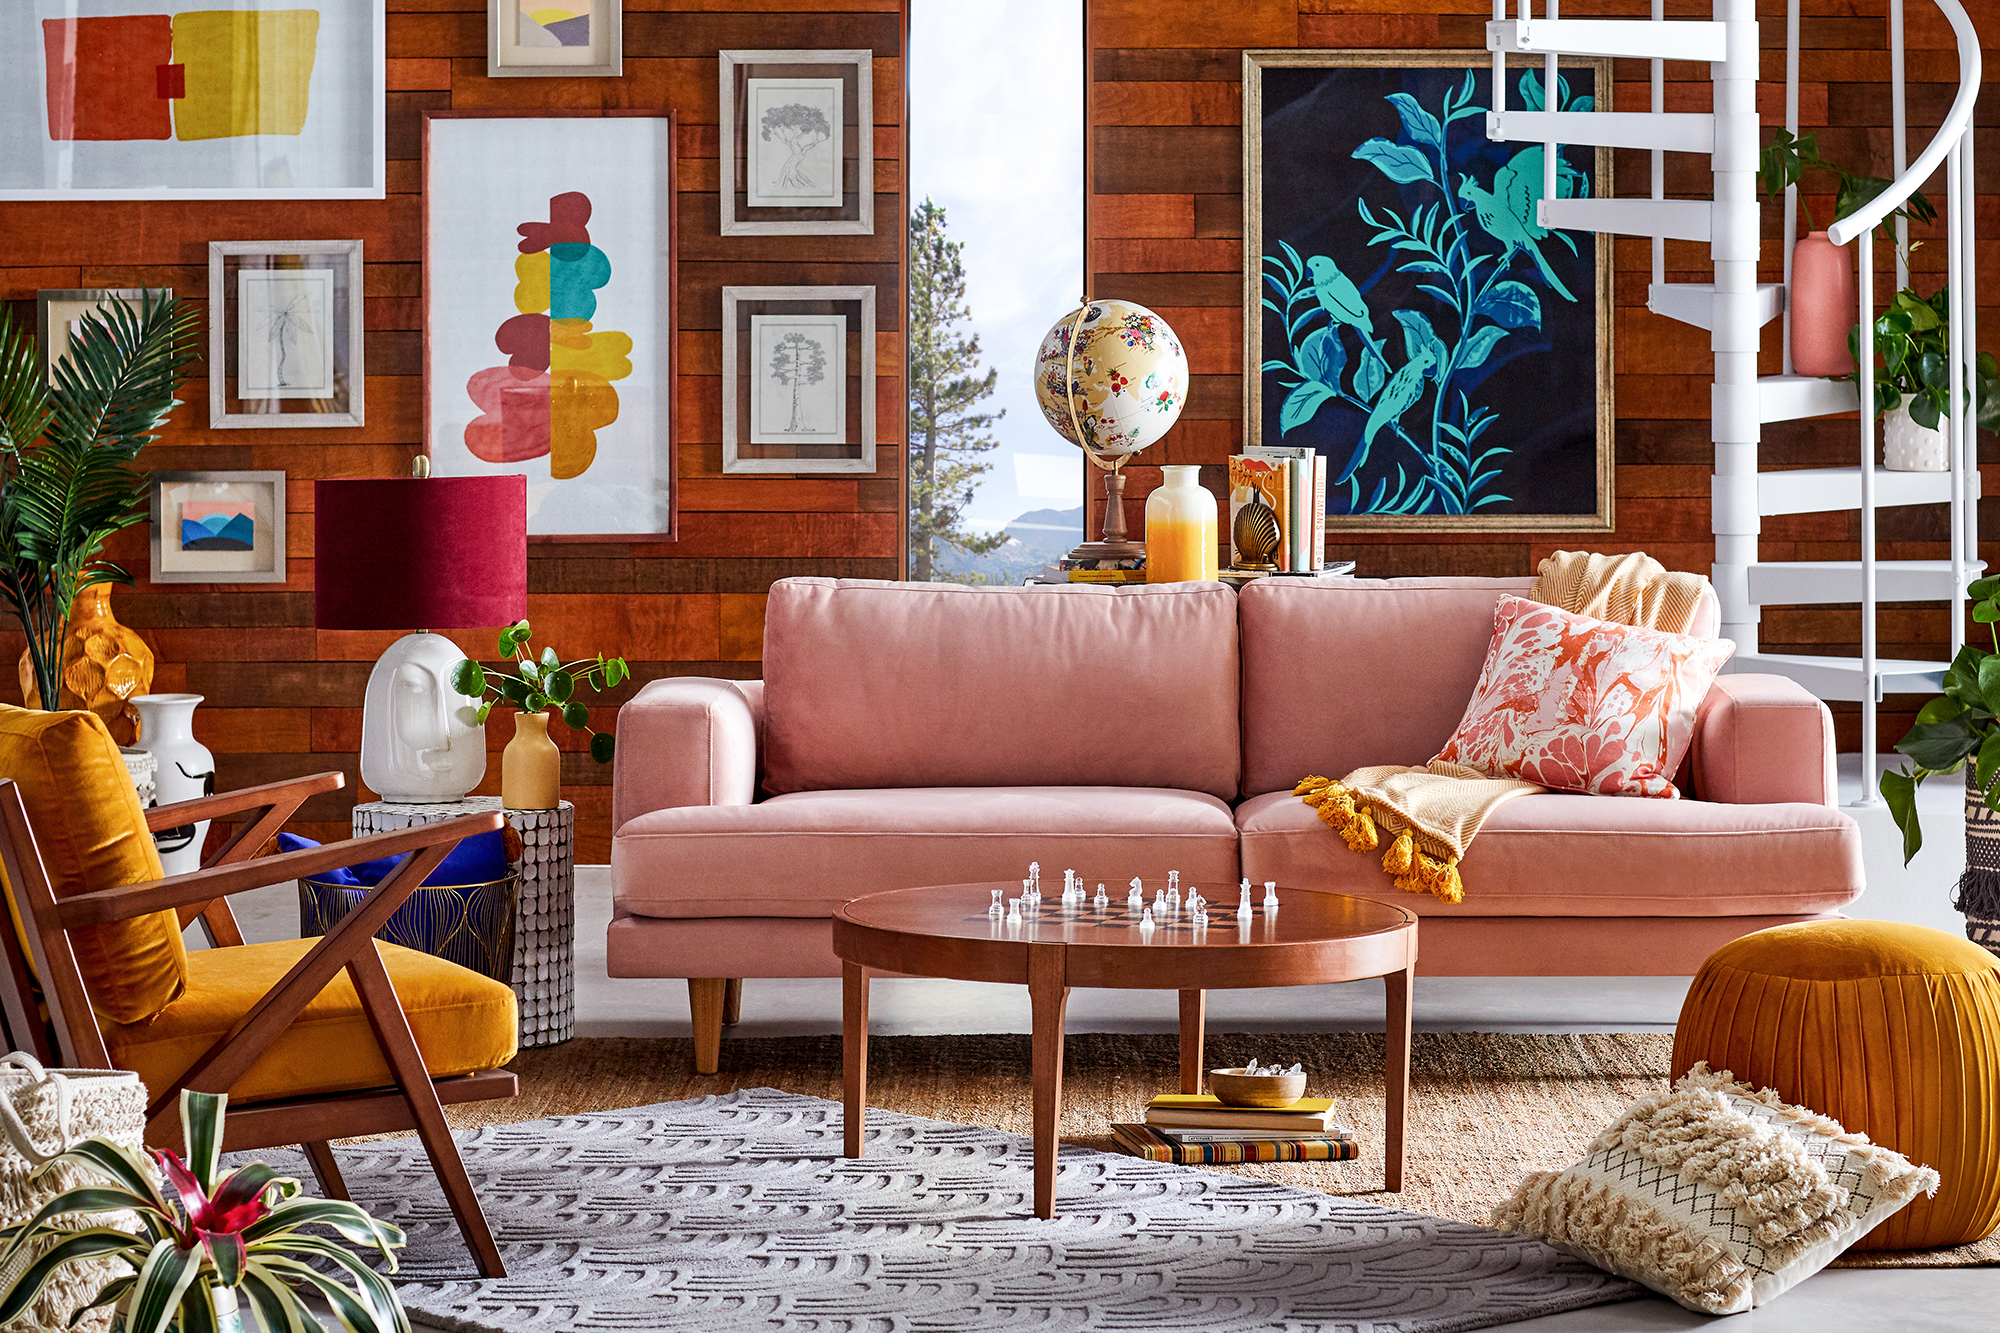 Drew Barrymore's Gorgeous New Home Collection at Walmart Has Left Us Speechless